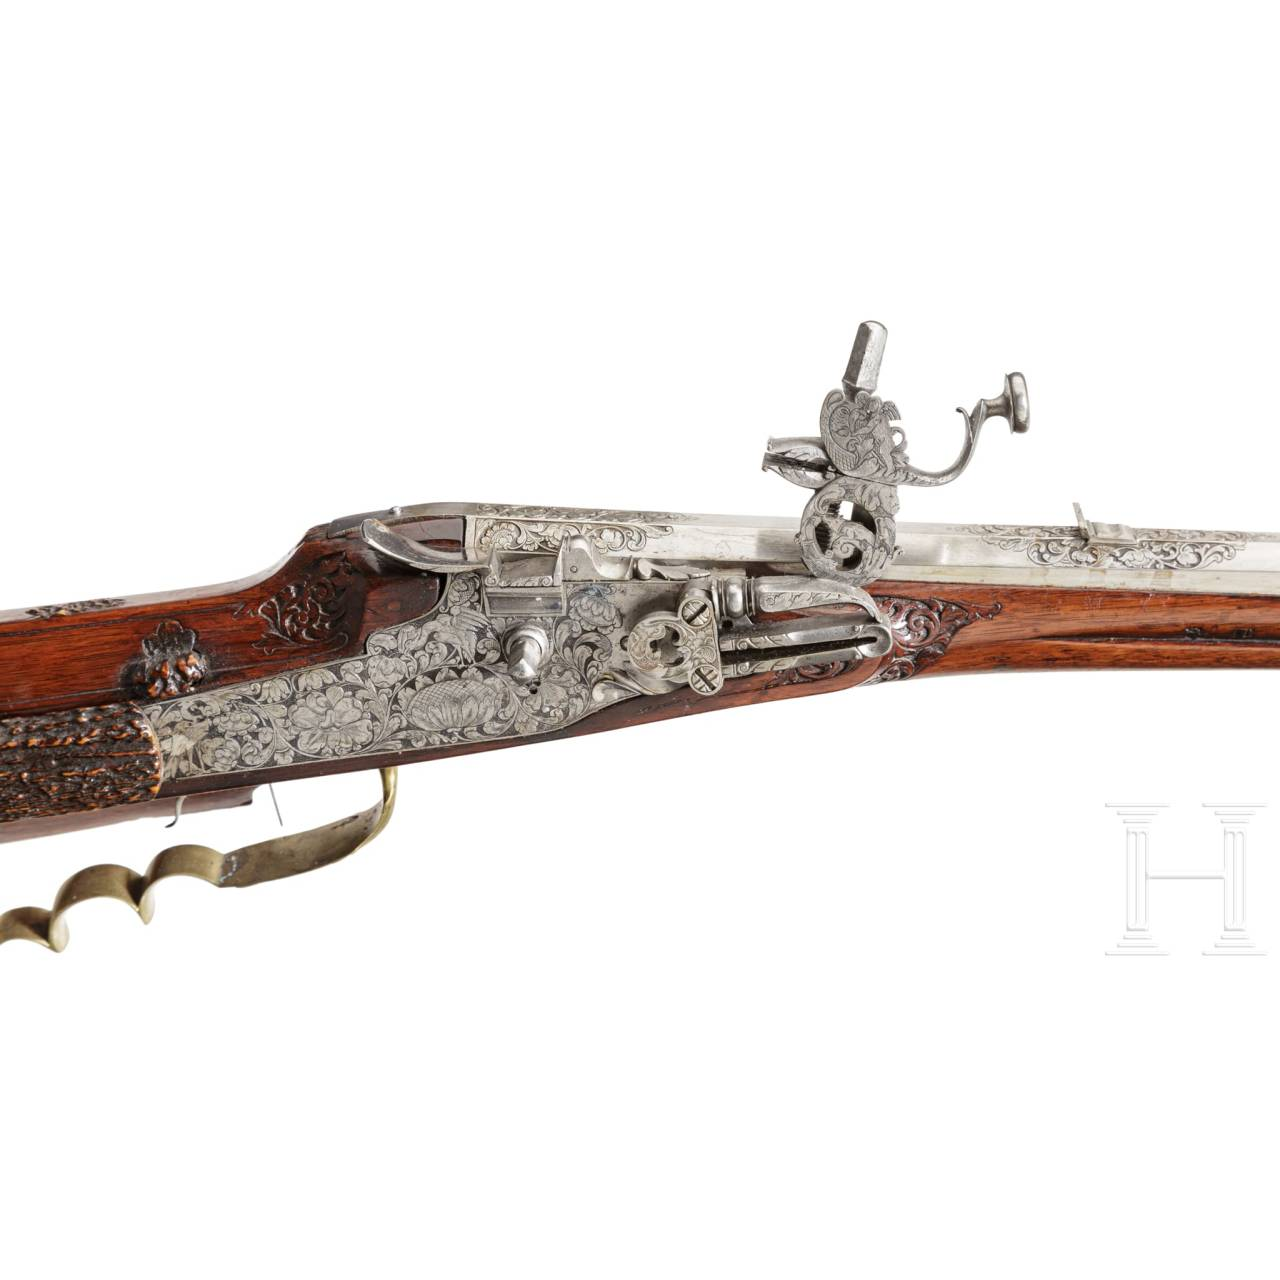 A German hunting wheellock rifle, the stock inlaid with staghorn, circa 1700